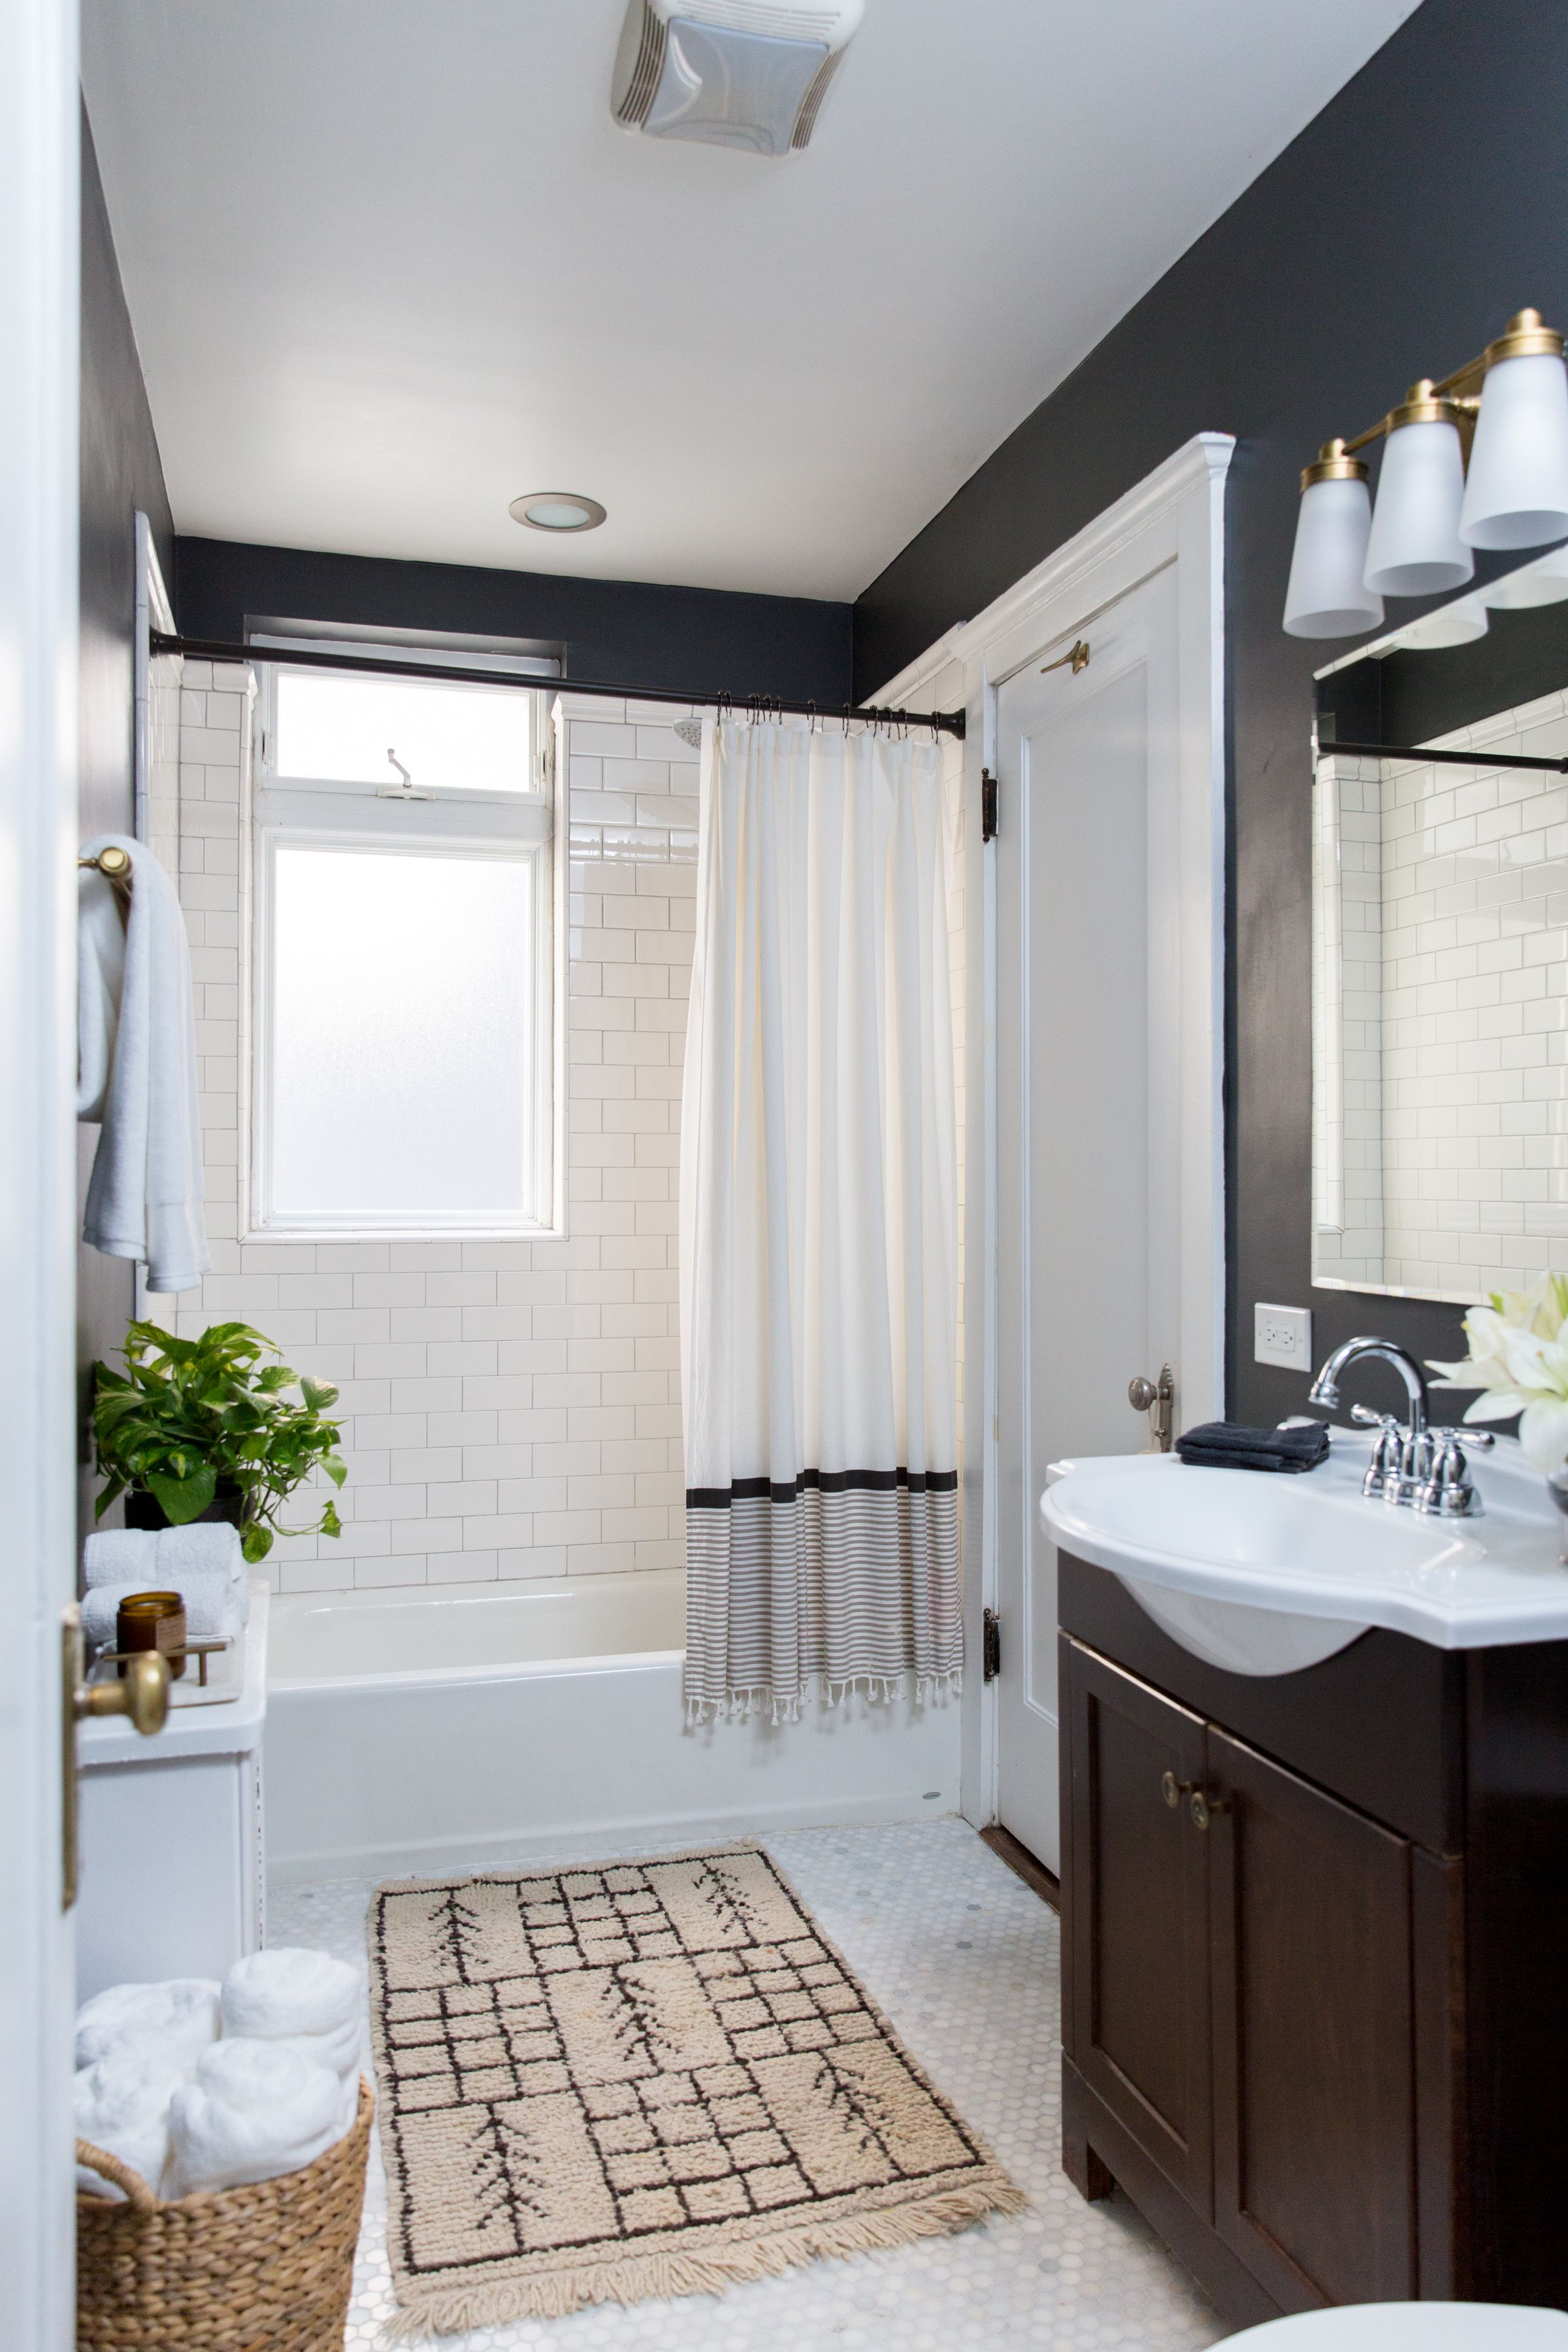 A Chicago Condo Is Modernized But Its Charm Remains Bathrooms Remodel House Bathroom Bathroom Renovations